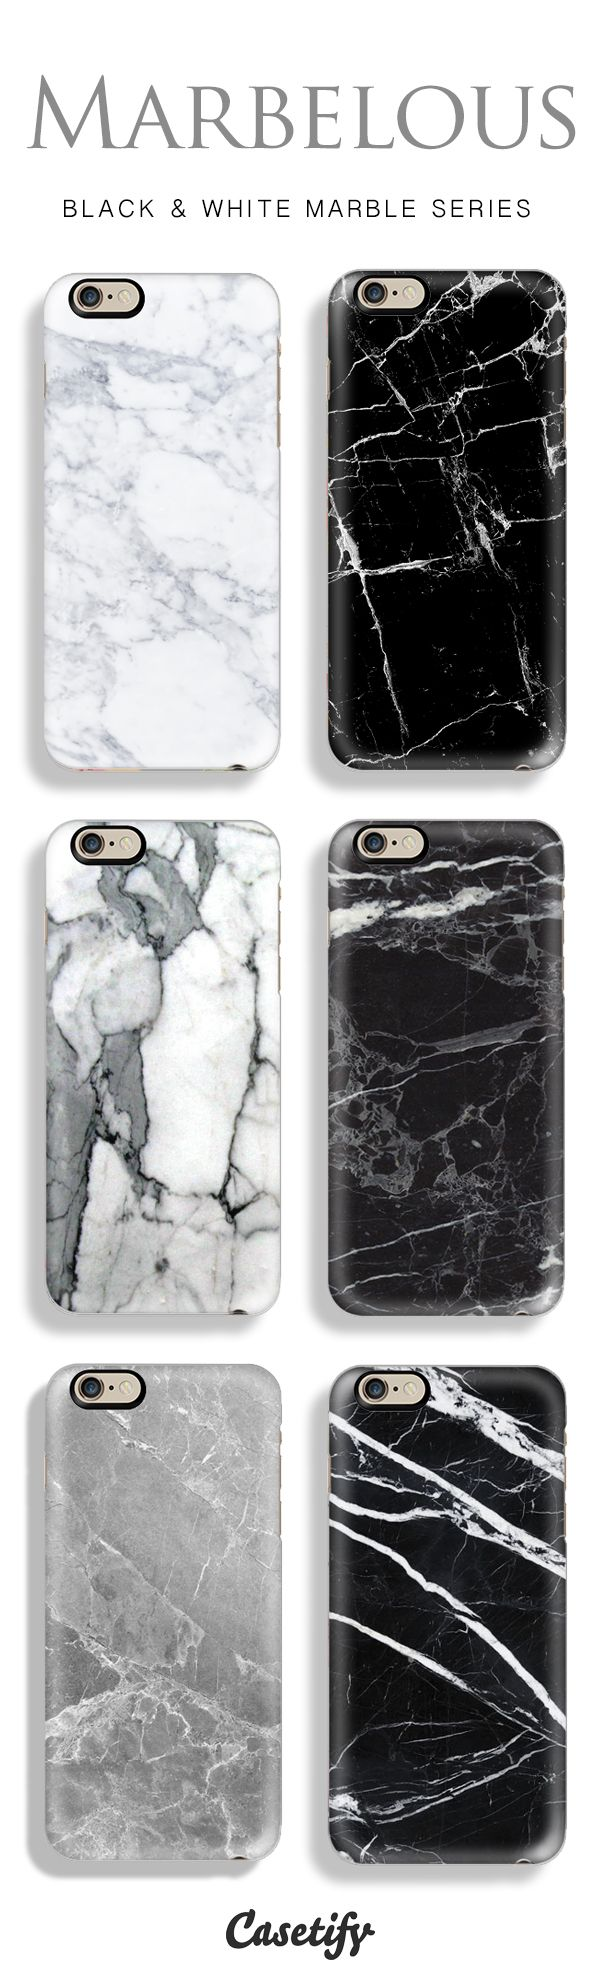 Top 6 marble iPhone 6 protective phone cases | Click through to see more black and white marble iphone phone case ideas >>> http://www.casetify.com/marble-iphone-case | @casetify